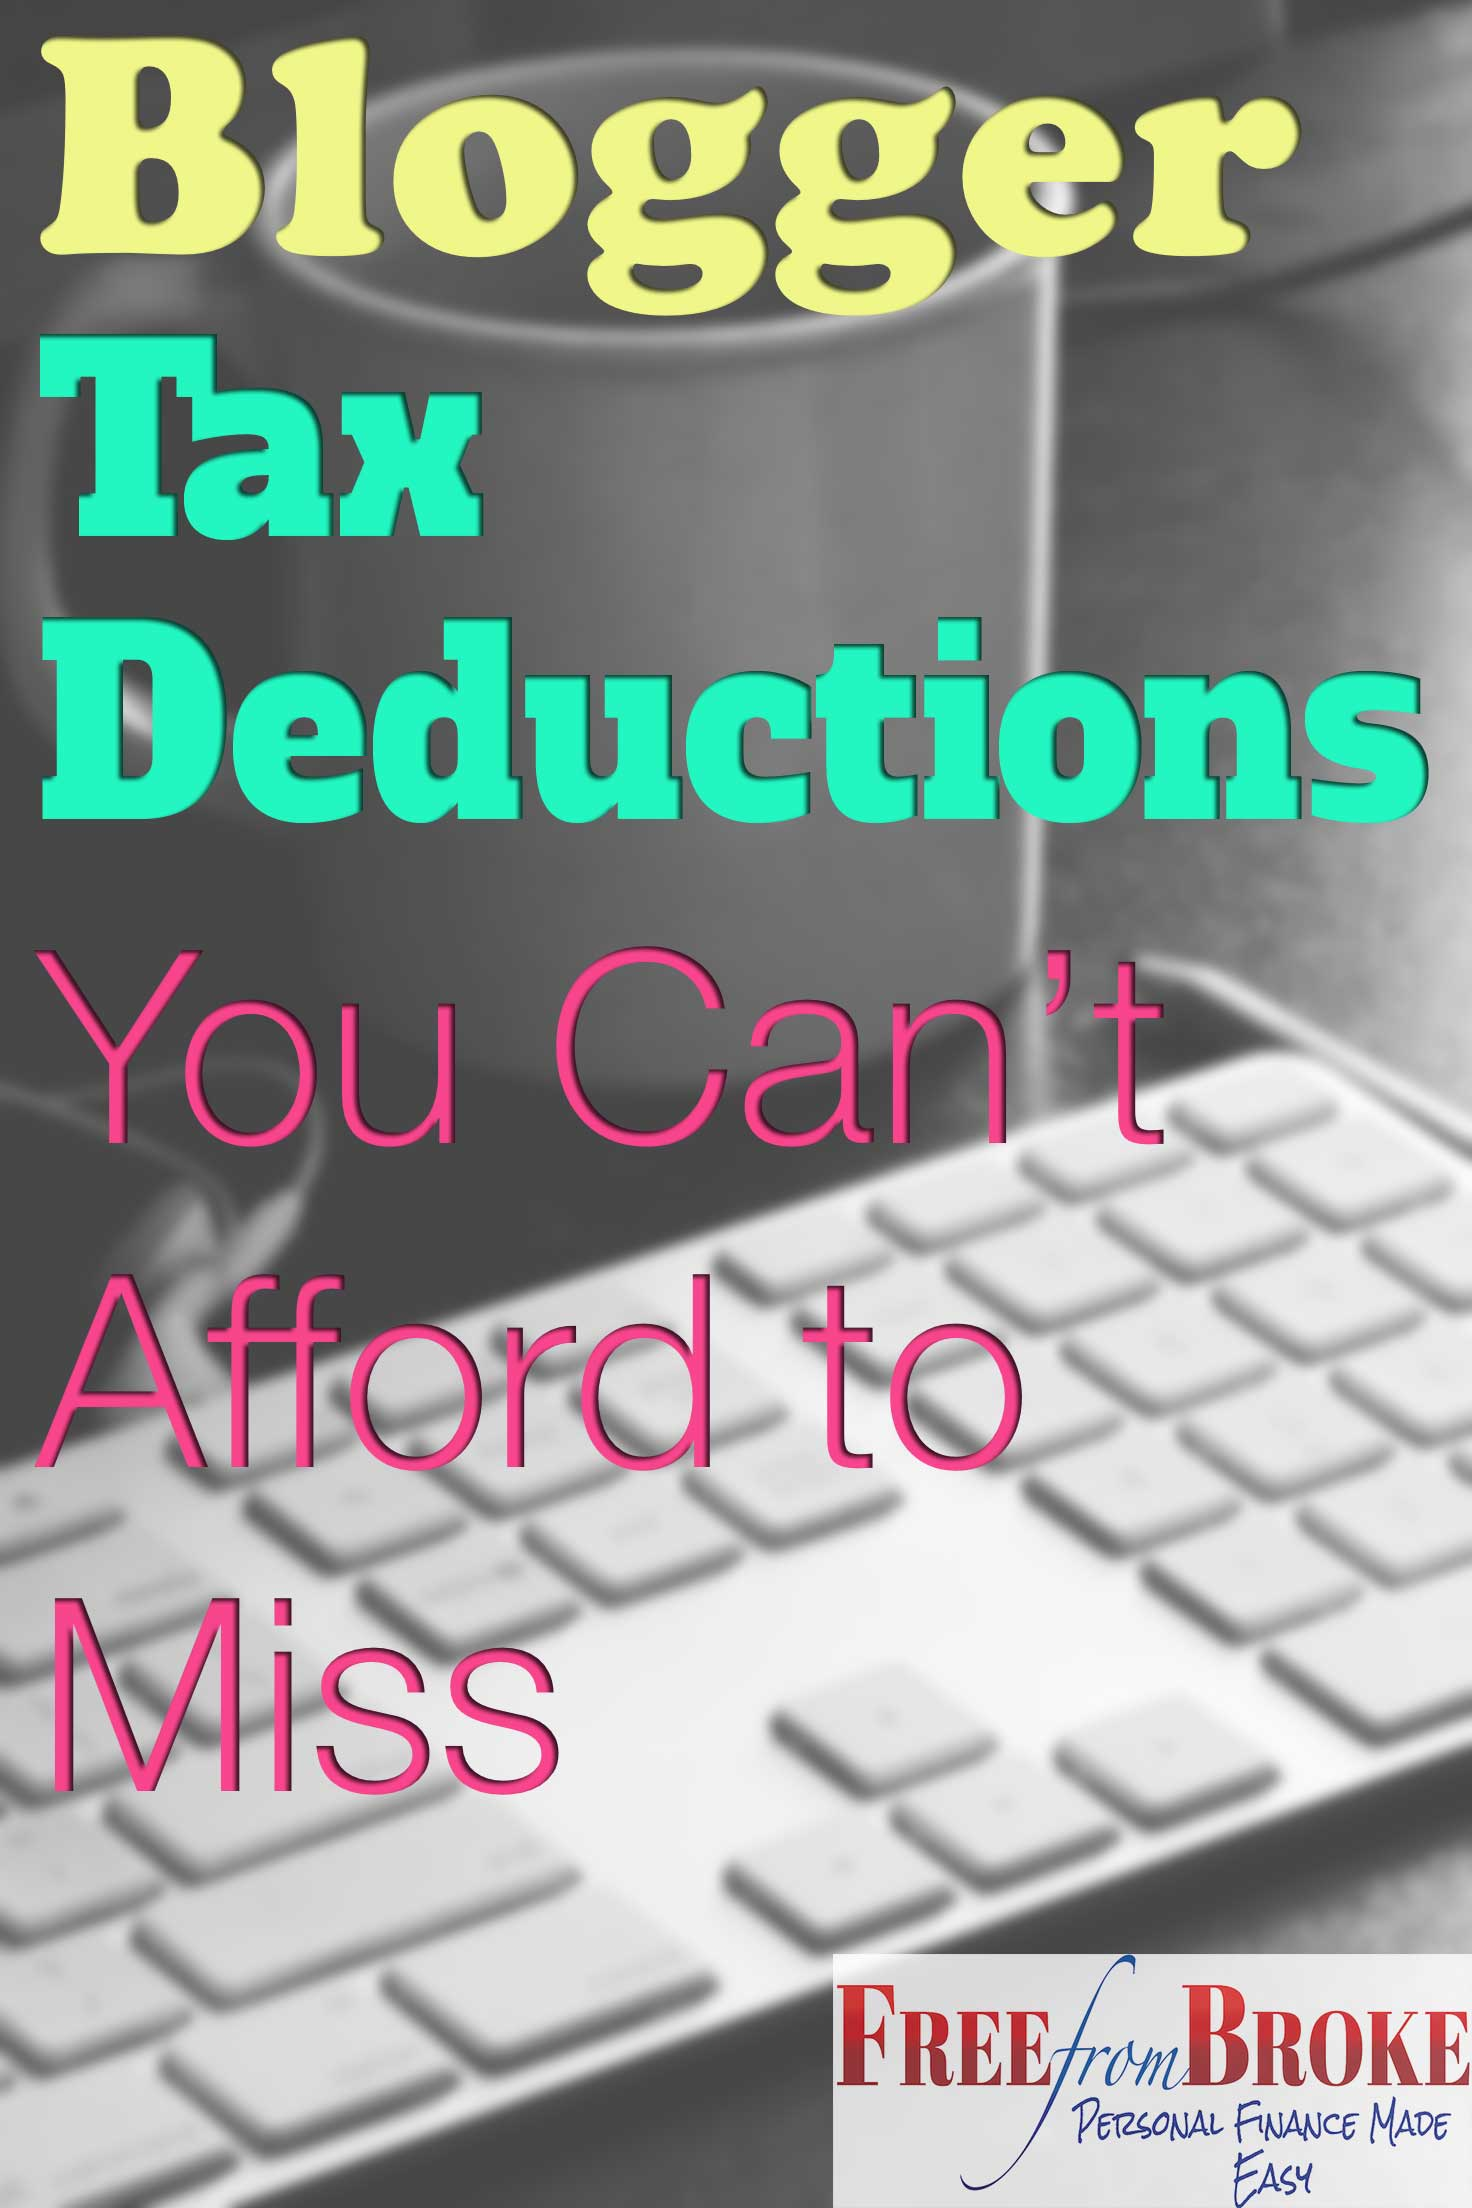 It 2014 08 sports wagering guidelines that you cana t afford to overlook - Blogger Tax Deductions You Can T Afford To Miss